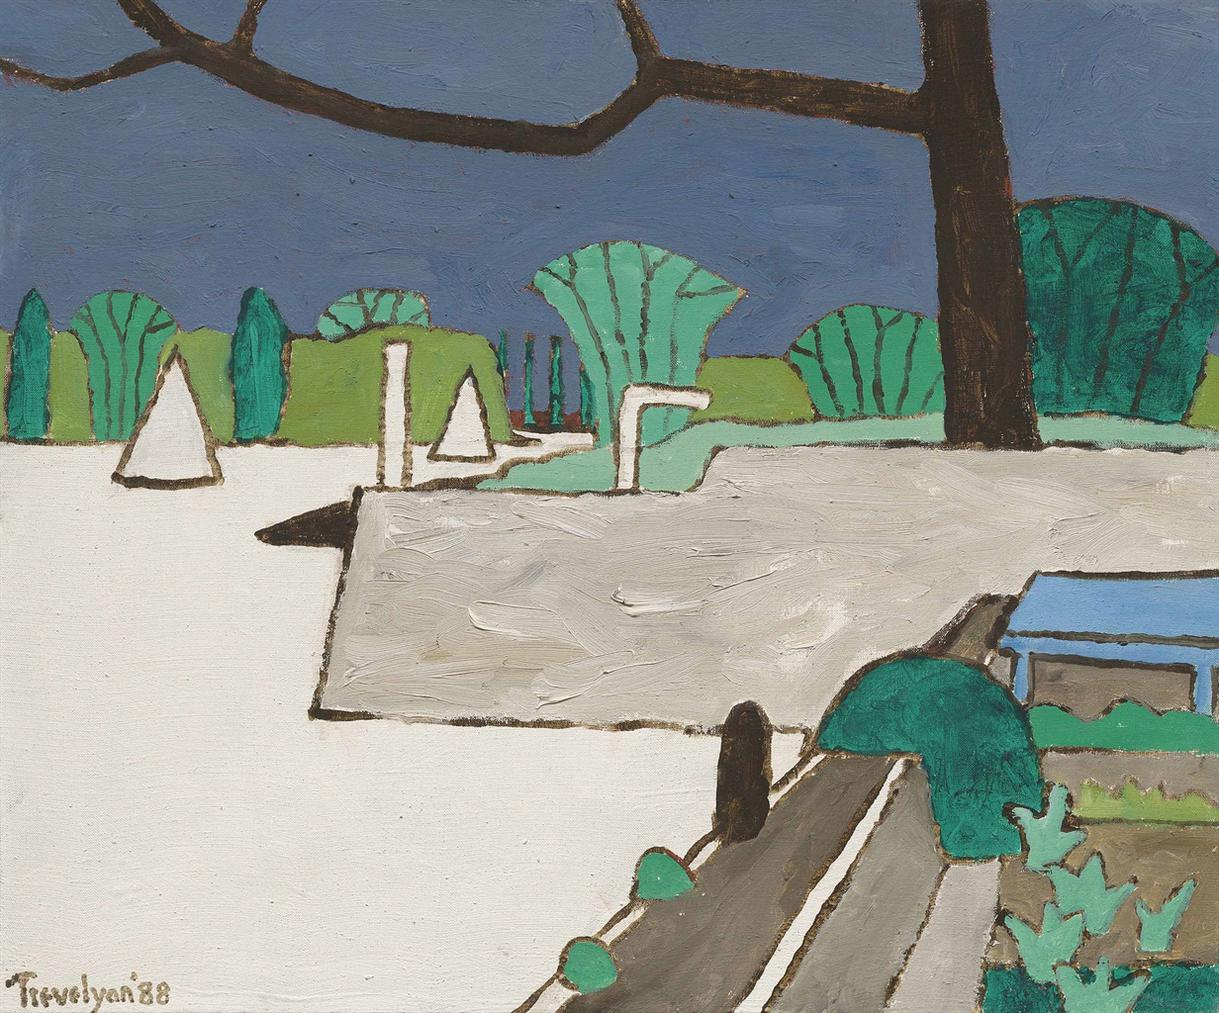 Julian Trevelyan-Trees By River, Durham Wharf-1988